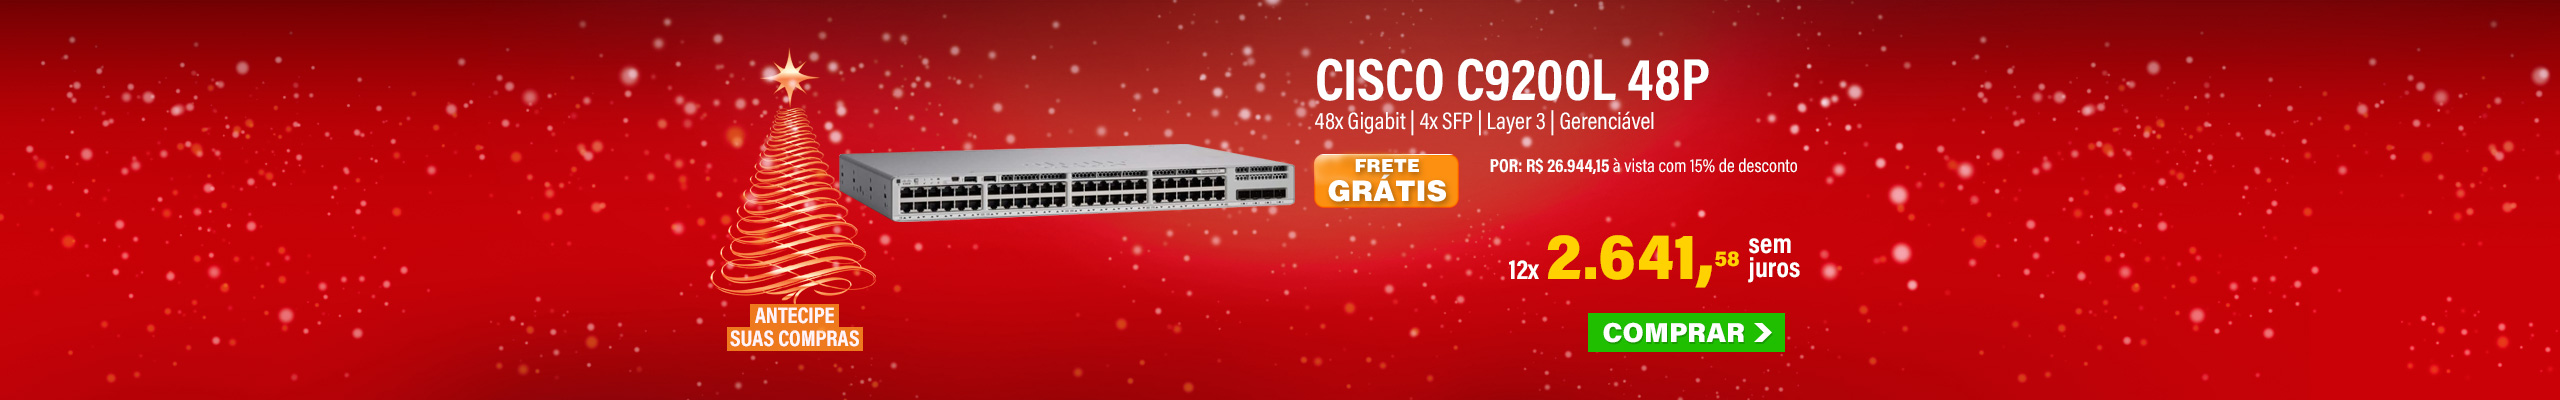 SWITCH CISCO C9200L | 48 PORTAS GIGABIT | 4X SFP | NETWORK ESSENTIALS | LAYER 3 | GERENCIÁVEL | MPN: C9200L-48T-4G-E-BR